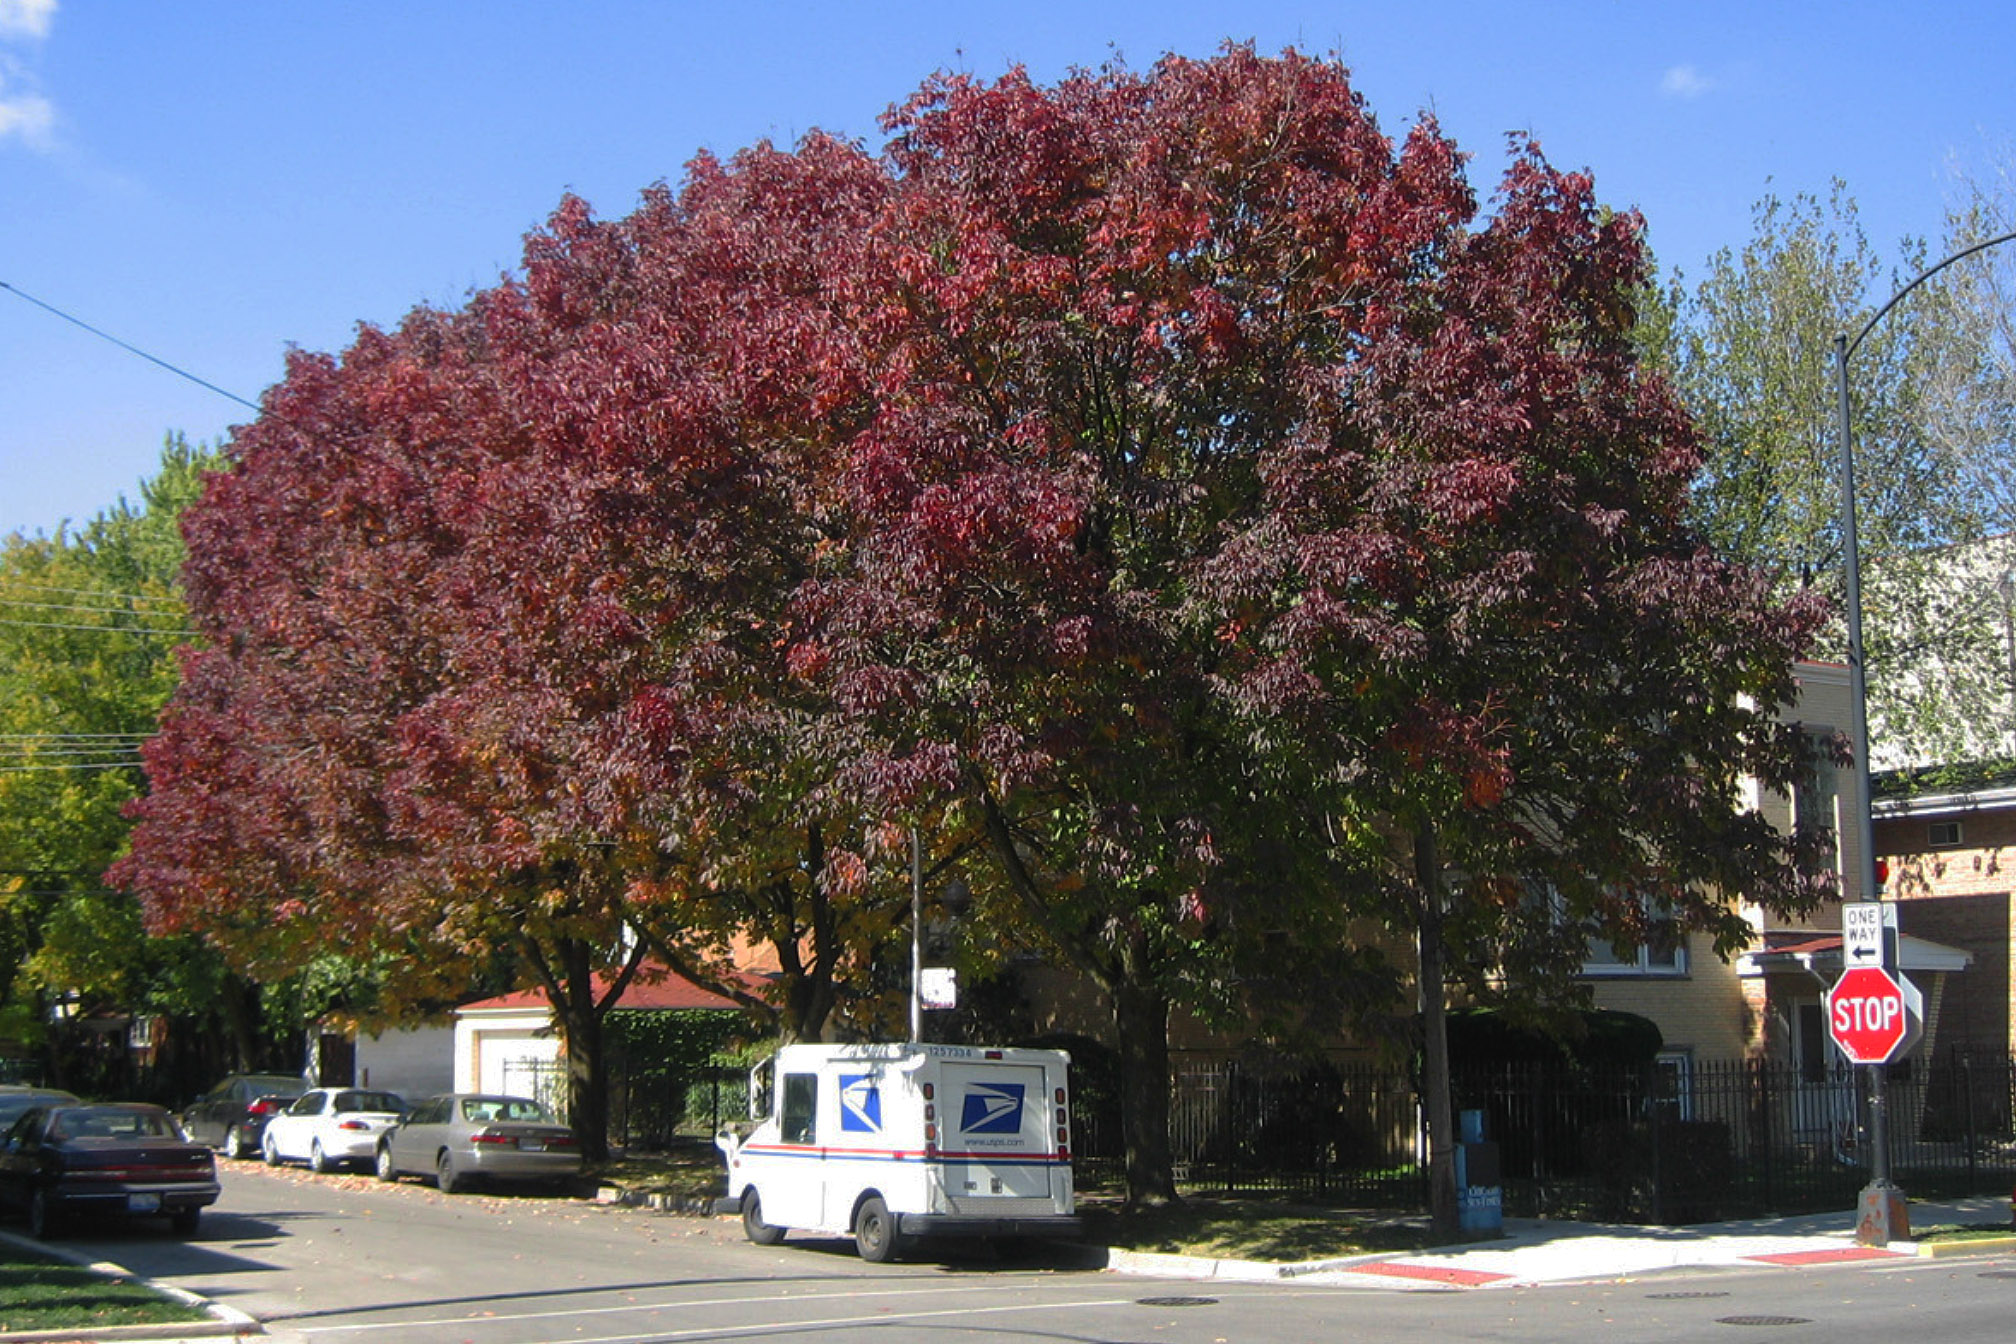 Mature Ash trees are a vital contributor to Chicago's urban forest